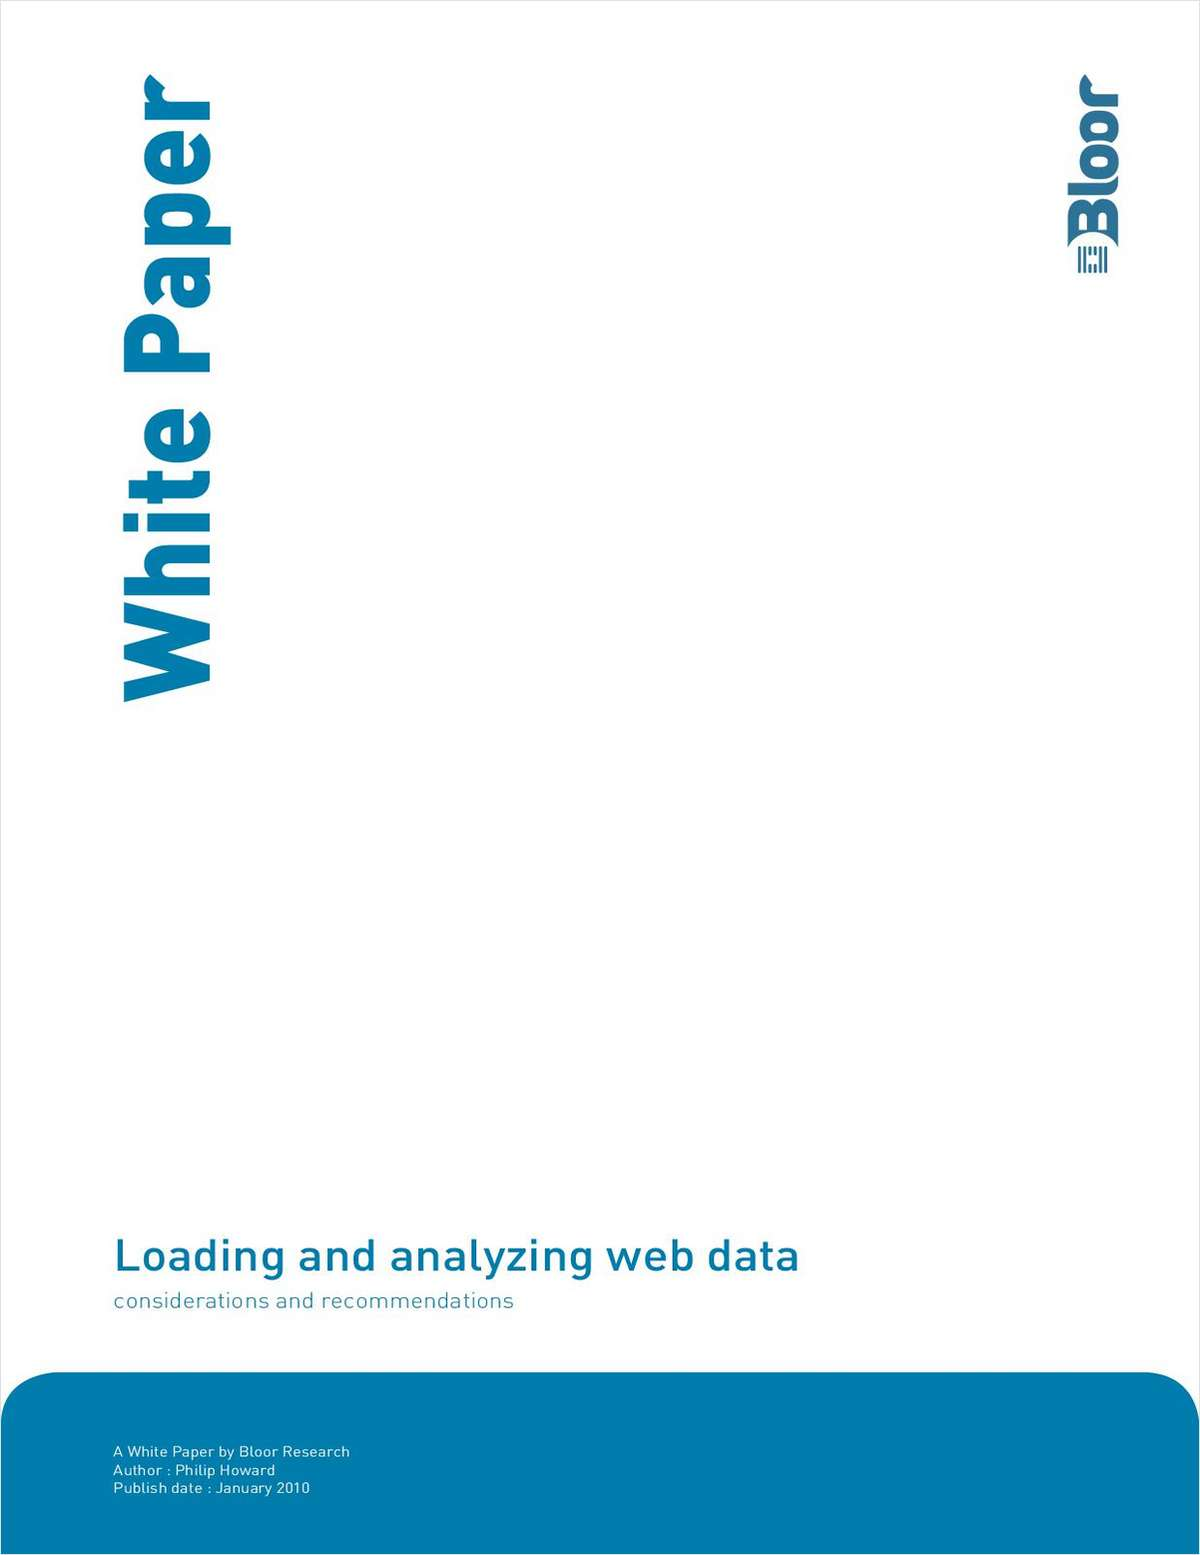 Software Developers Guide to Loading and Analyzing Web Data